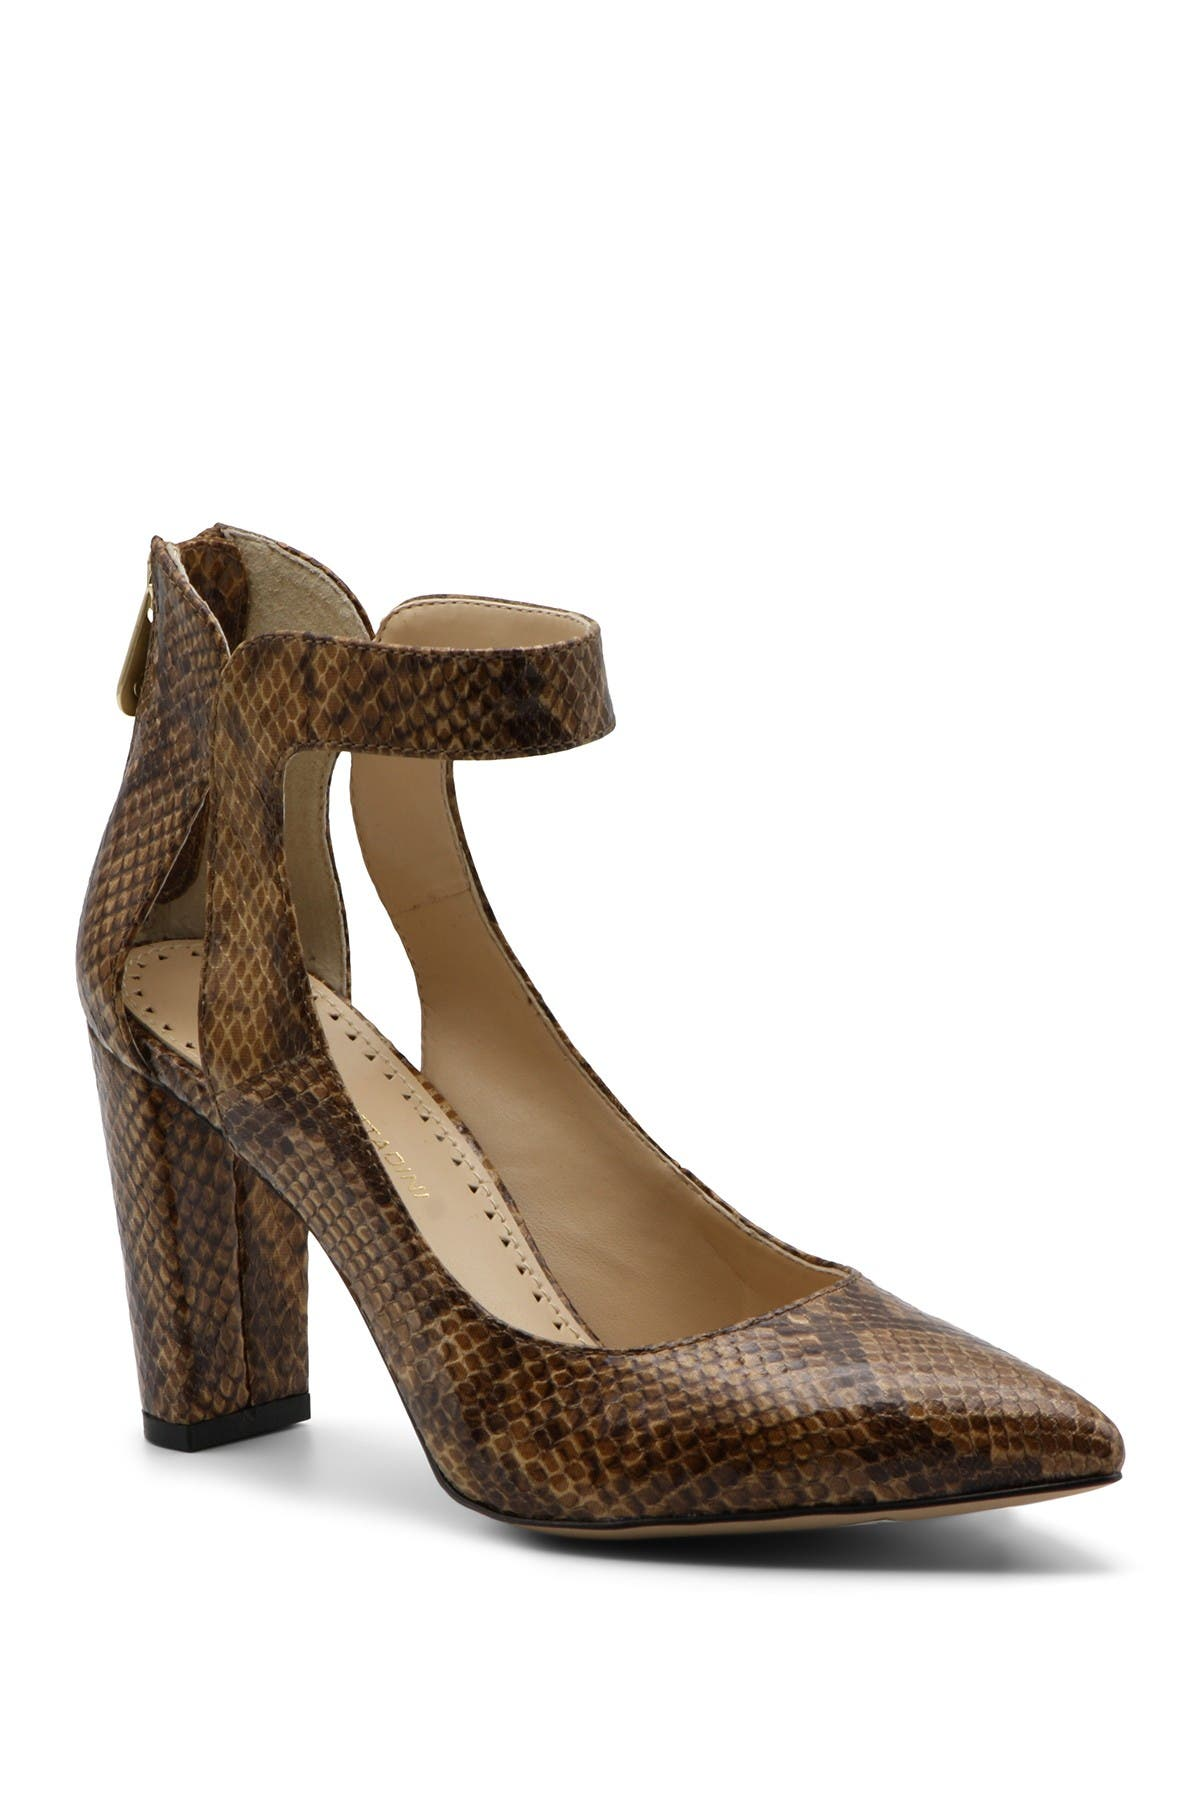 Image of Adrienne Vittadini Nieves Snake Print Ankle Strap Pump